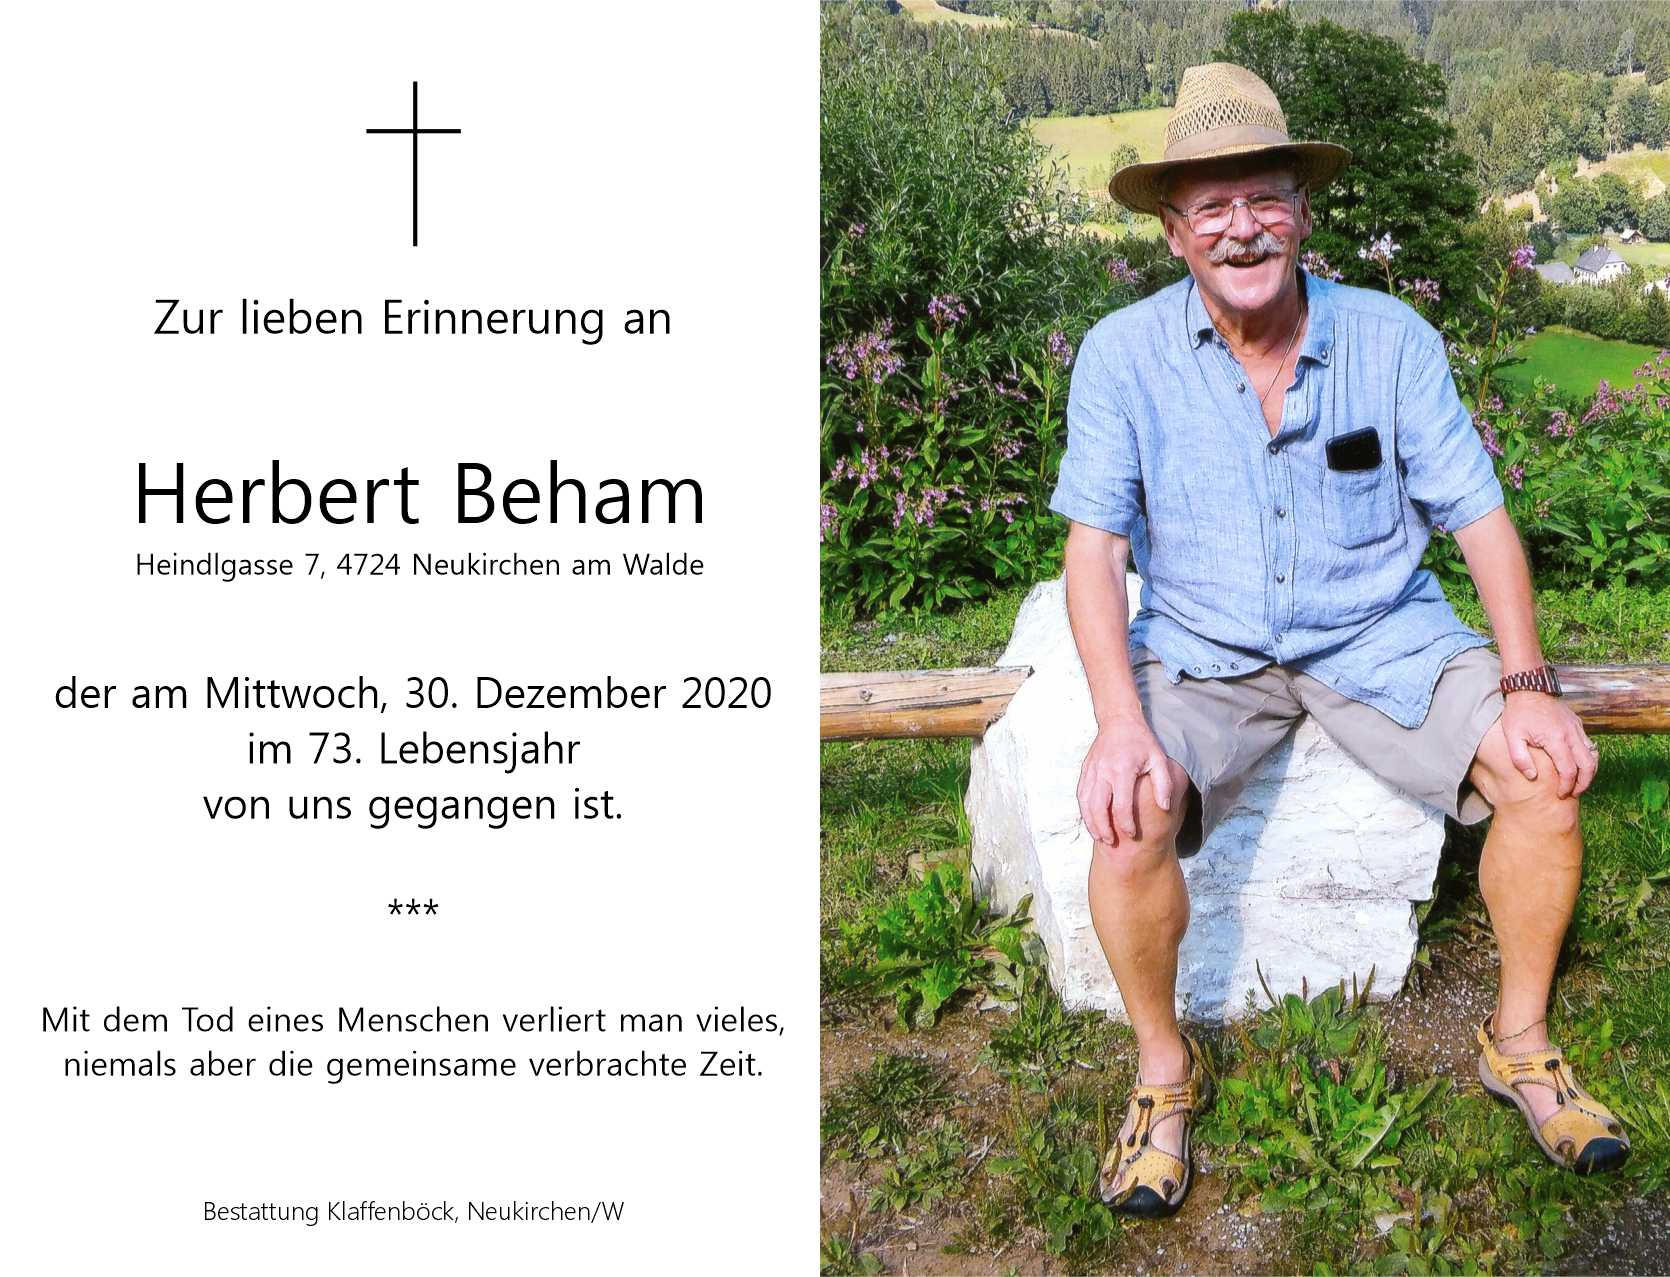 Die Sportunion trauert um Herbert Beham